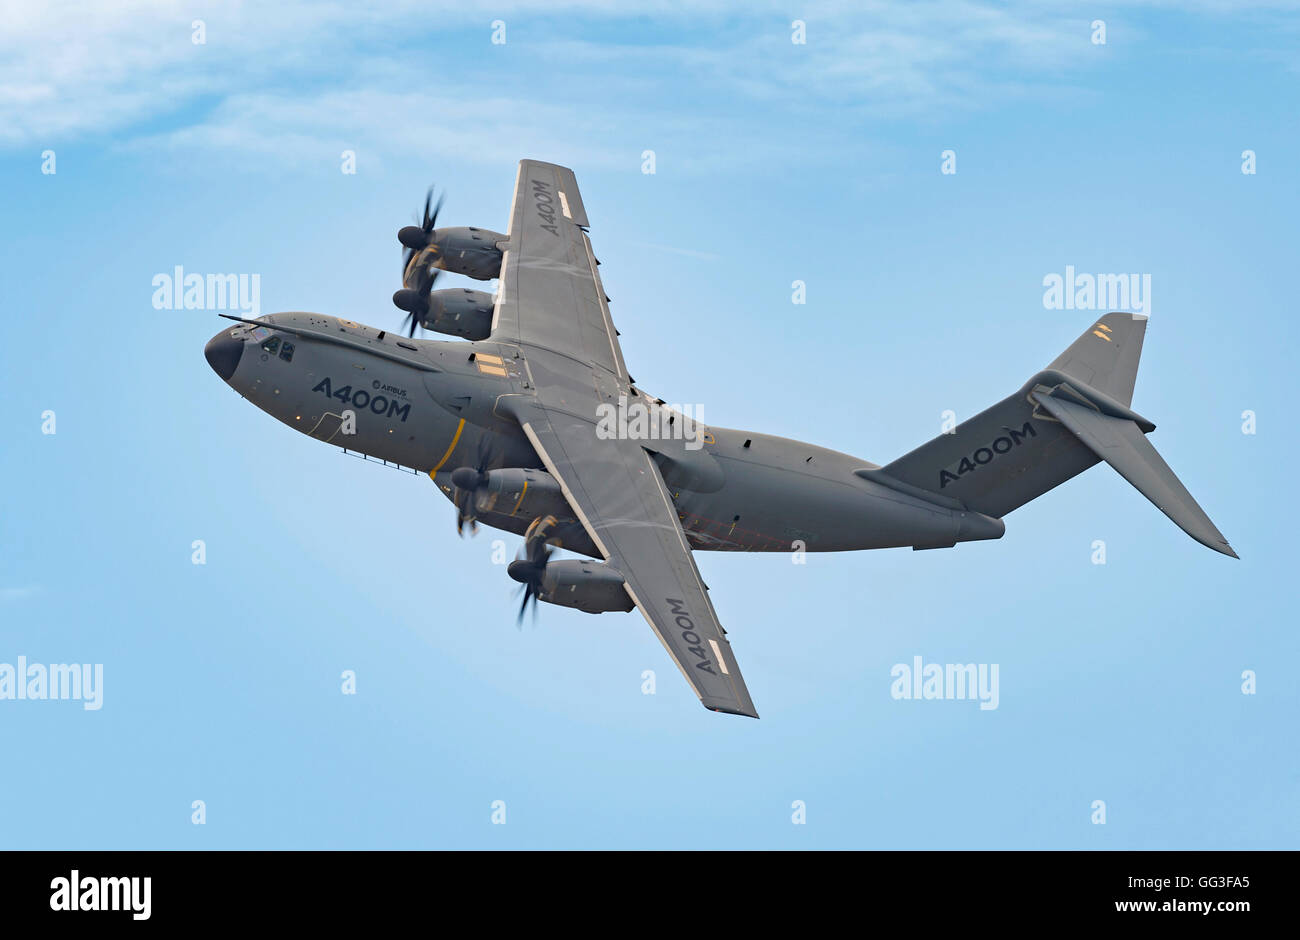 Airbus A400m, EC-406, Toulouse, France, at the Royal International Tattoo 2016 - Stock Image